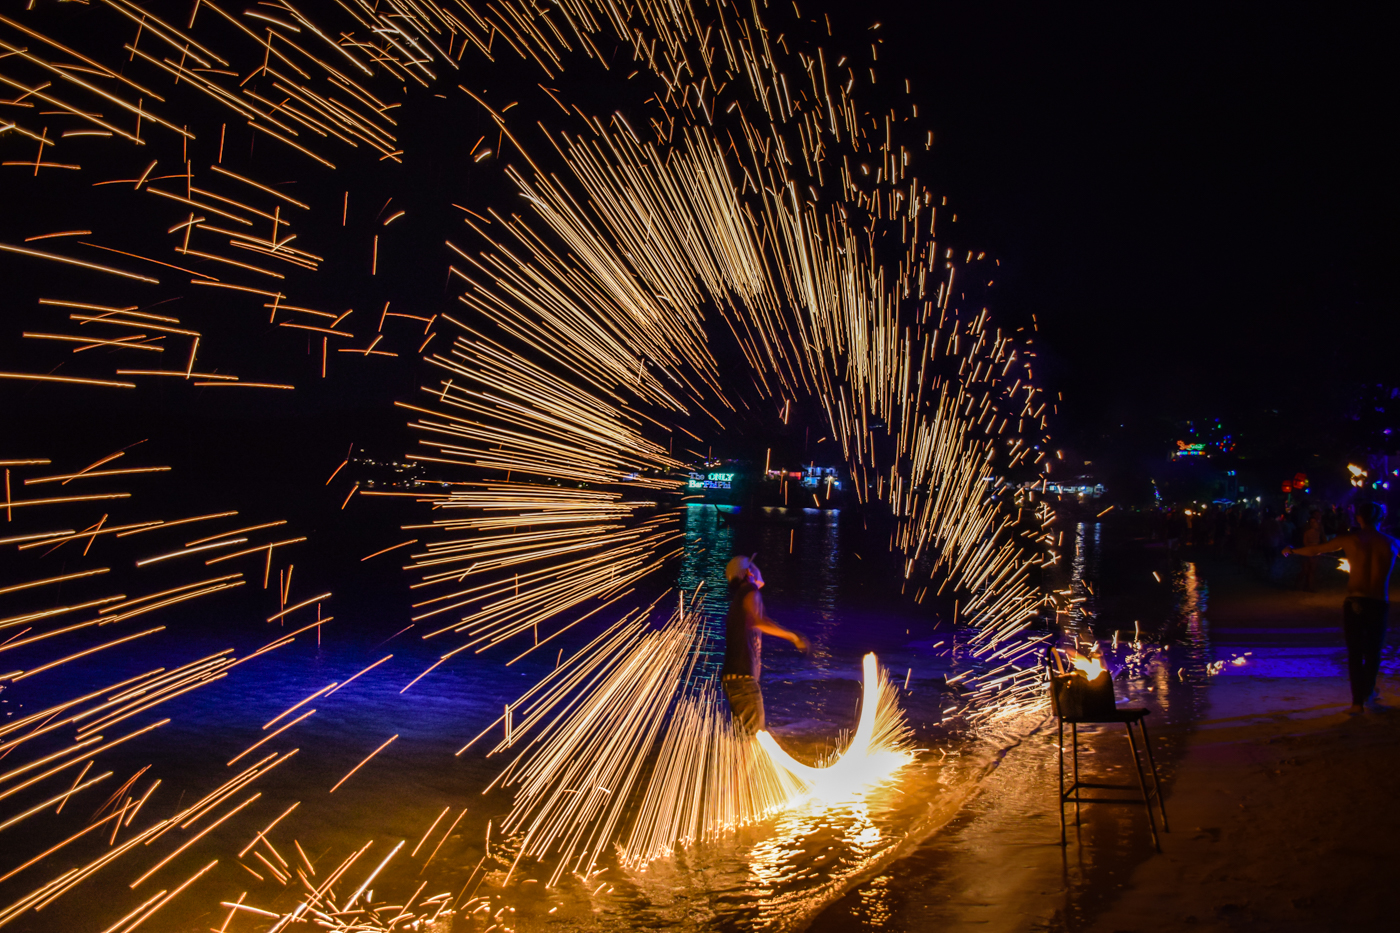 A fire show at the Full Moon Party in Thailand